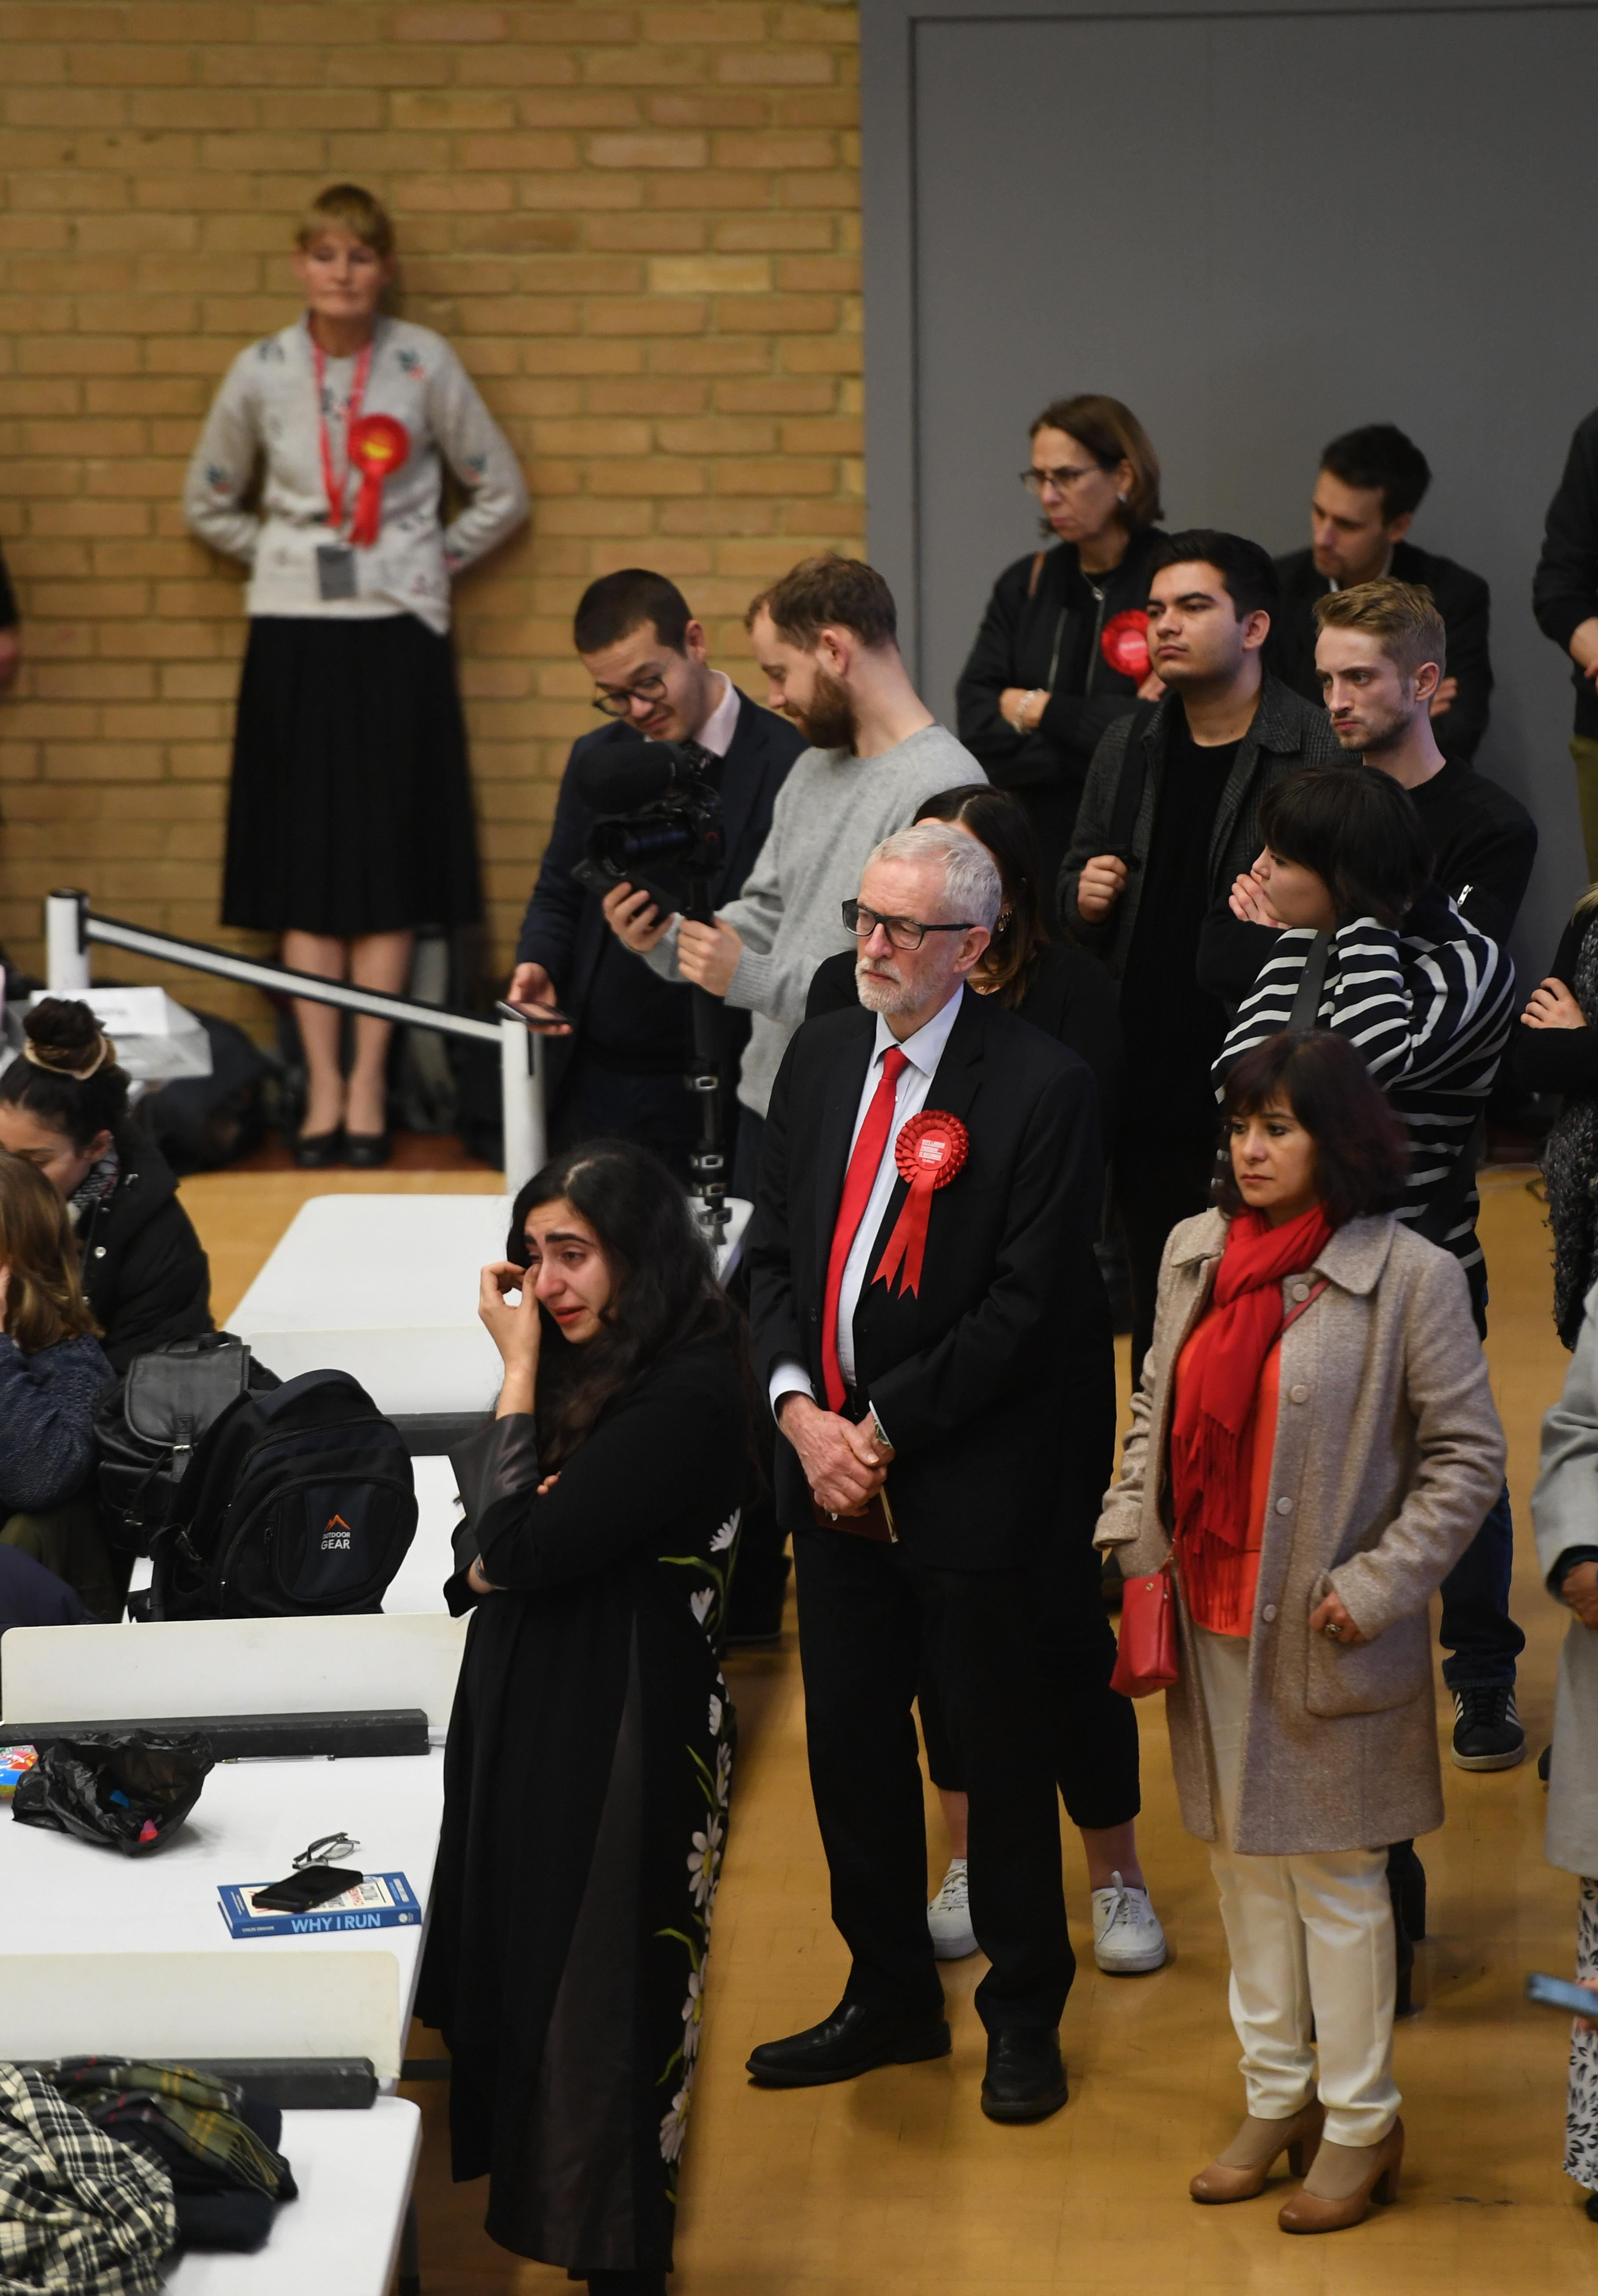 A woman appears emotional in front of Labour leader Jeremy Corbyn, with wife Laura Alvarez, at the count at Sobell Leisure Centre for the Islington North and South constituencies for the 2019 General Election. (Photo by Joe Giddens/PA Images via Getty Images)